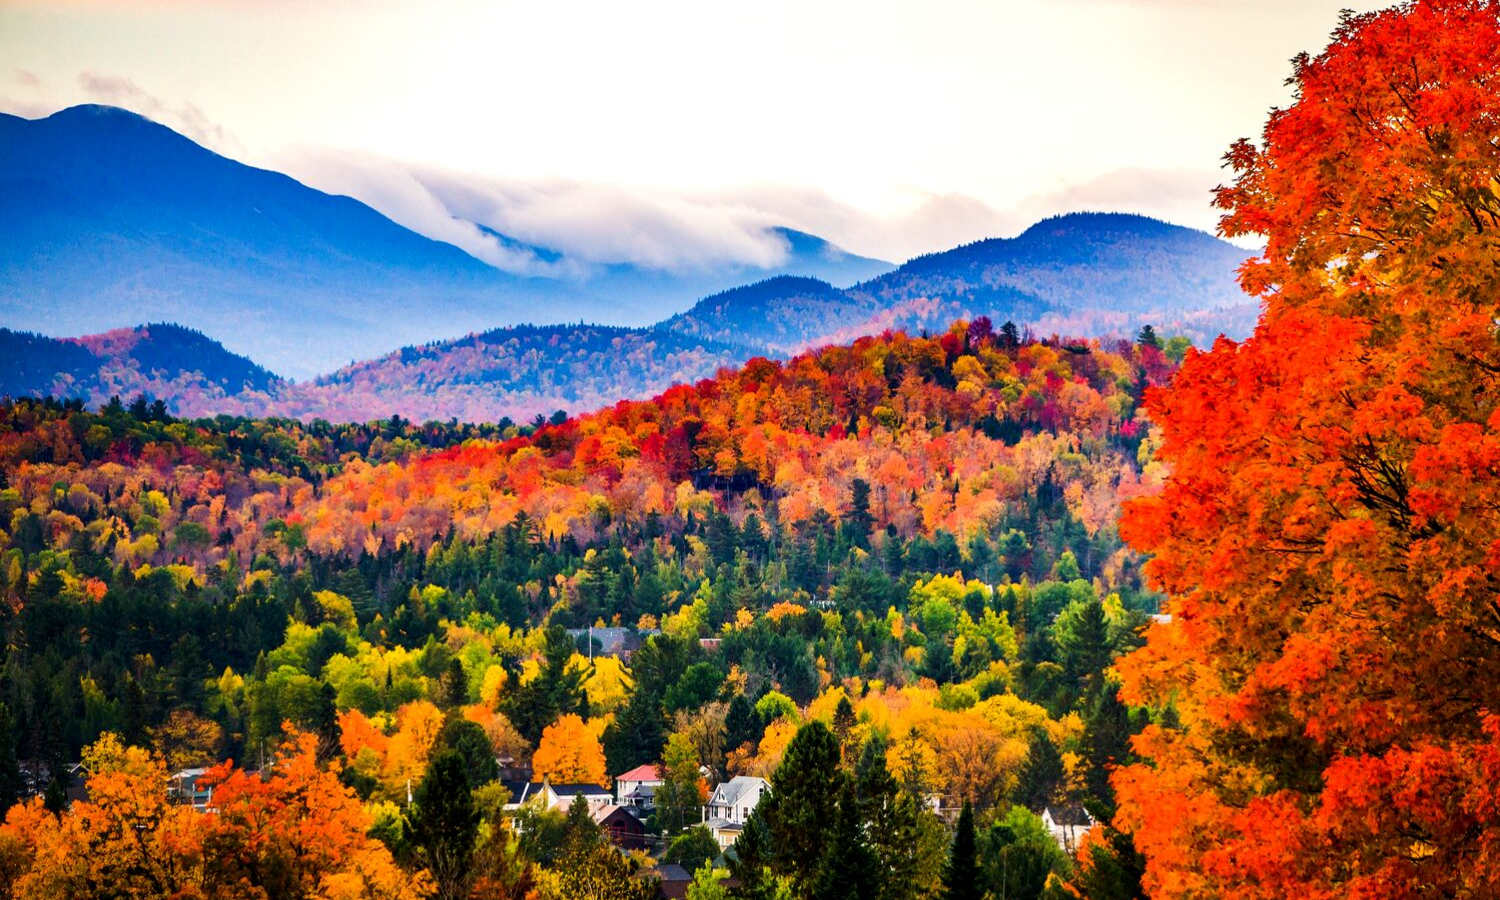 Photograph of a misty mountainous scene with red leaved trees.